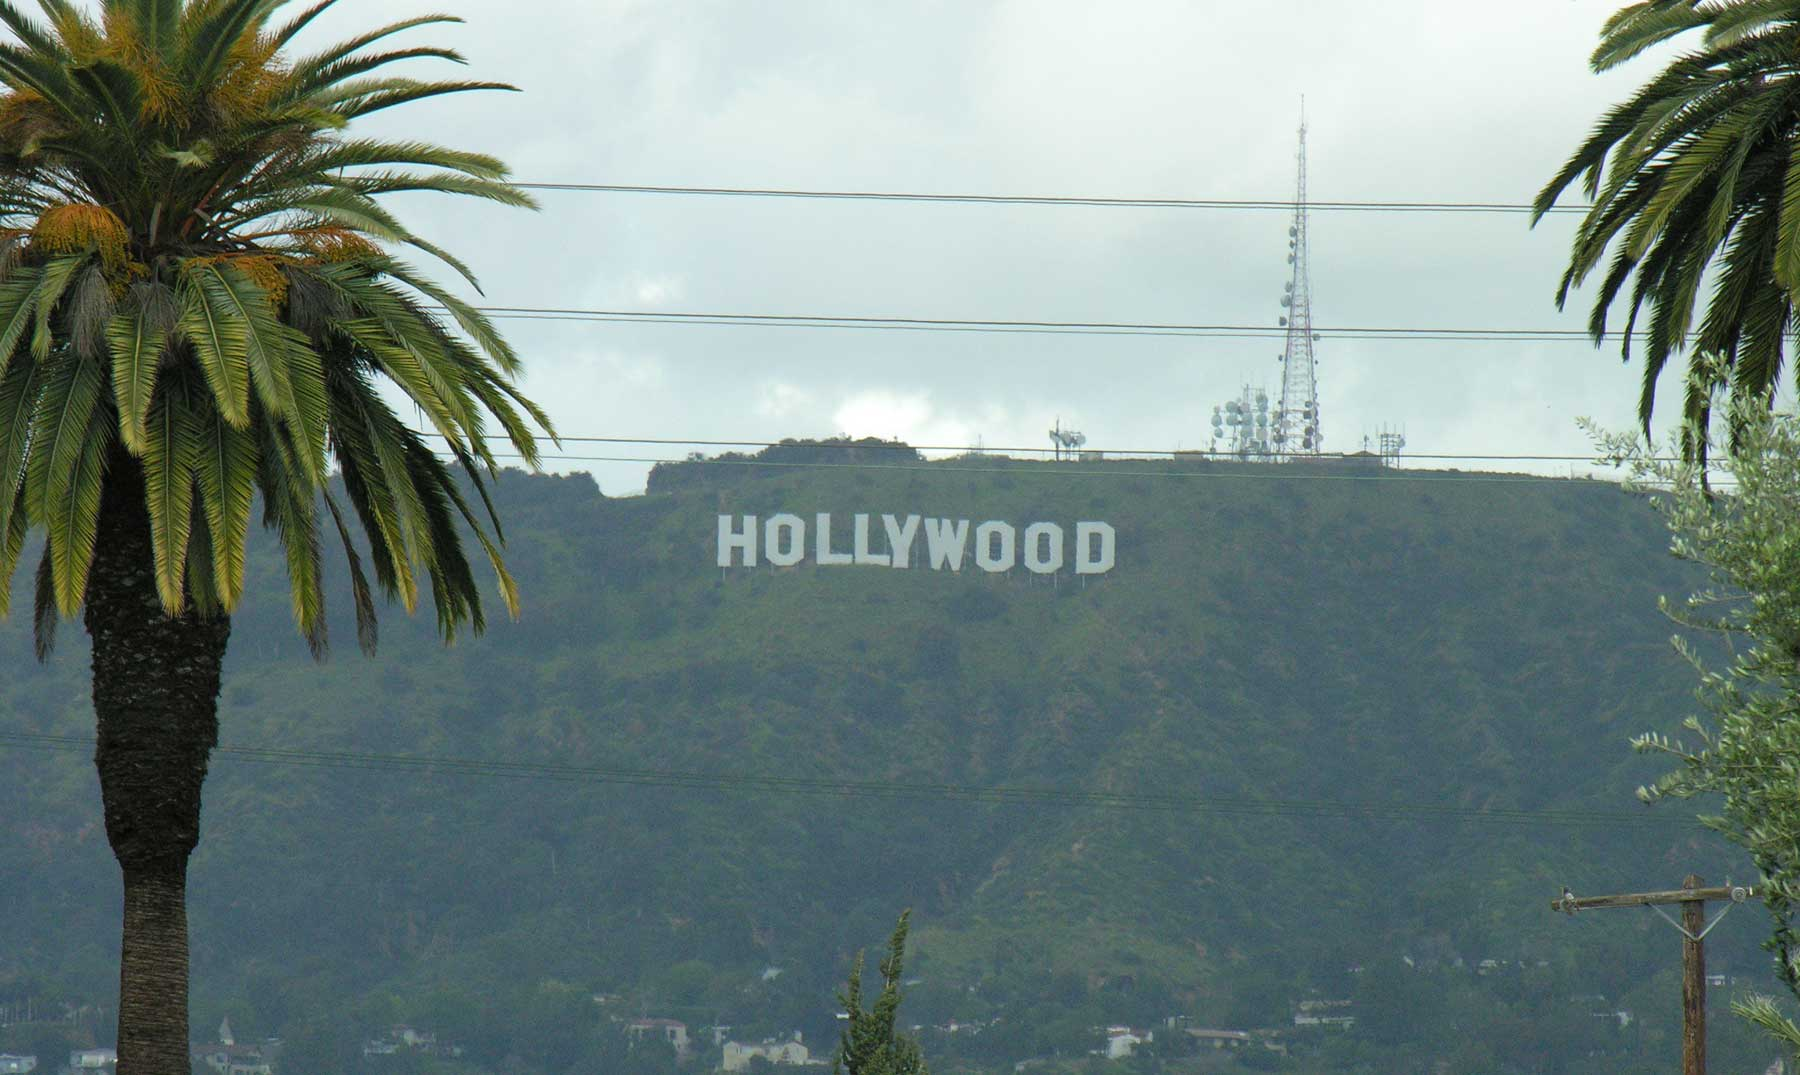 HOLLYWOOD, un cartel con mucha historia